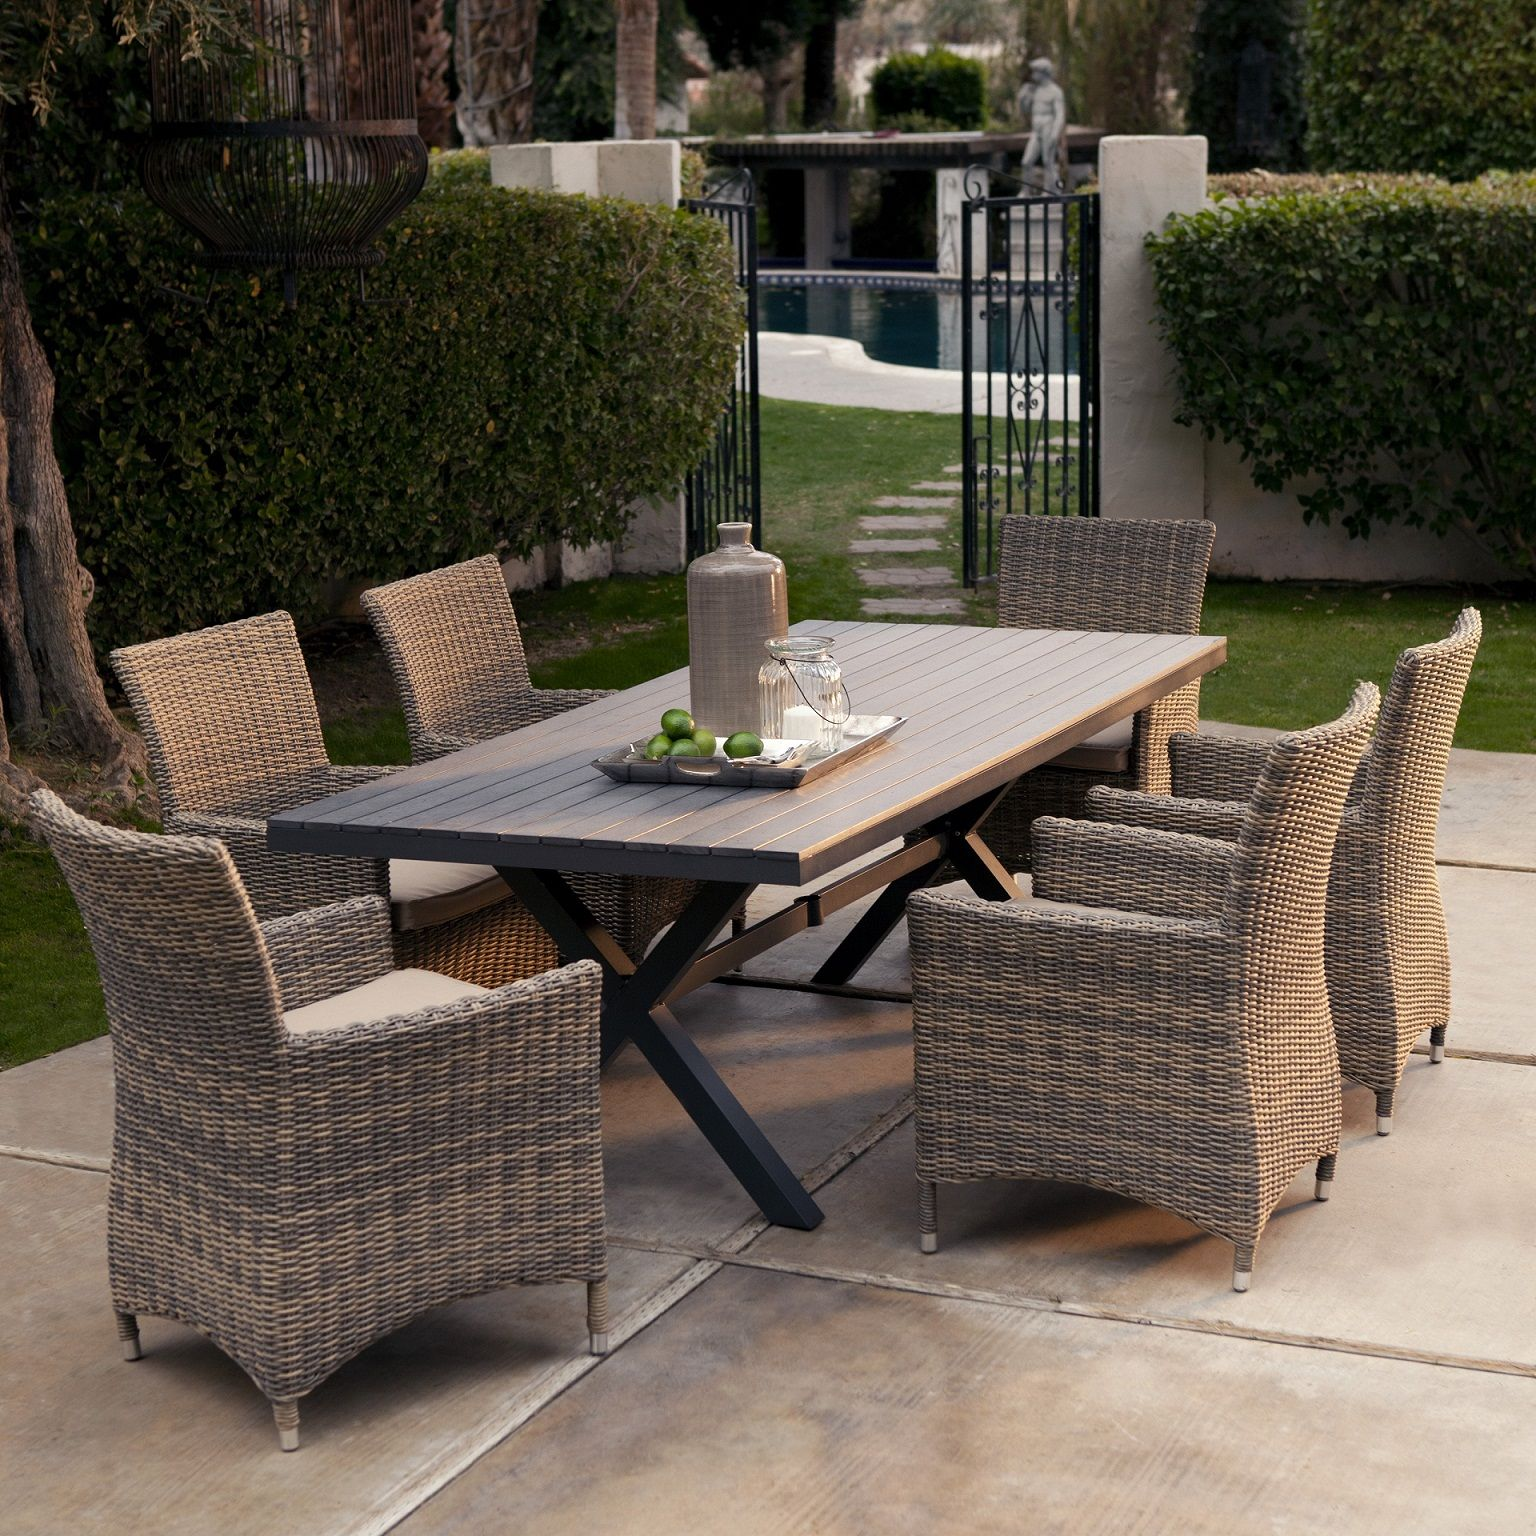 Resin Garden Table And Chair Sets: The Benefit Using Resin Patio Furniture For Your Lovely